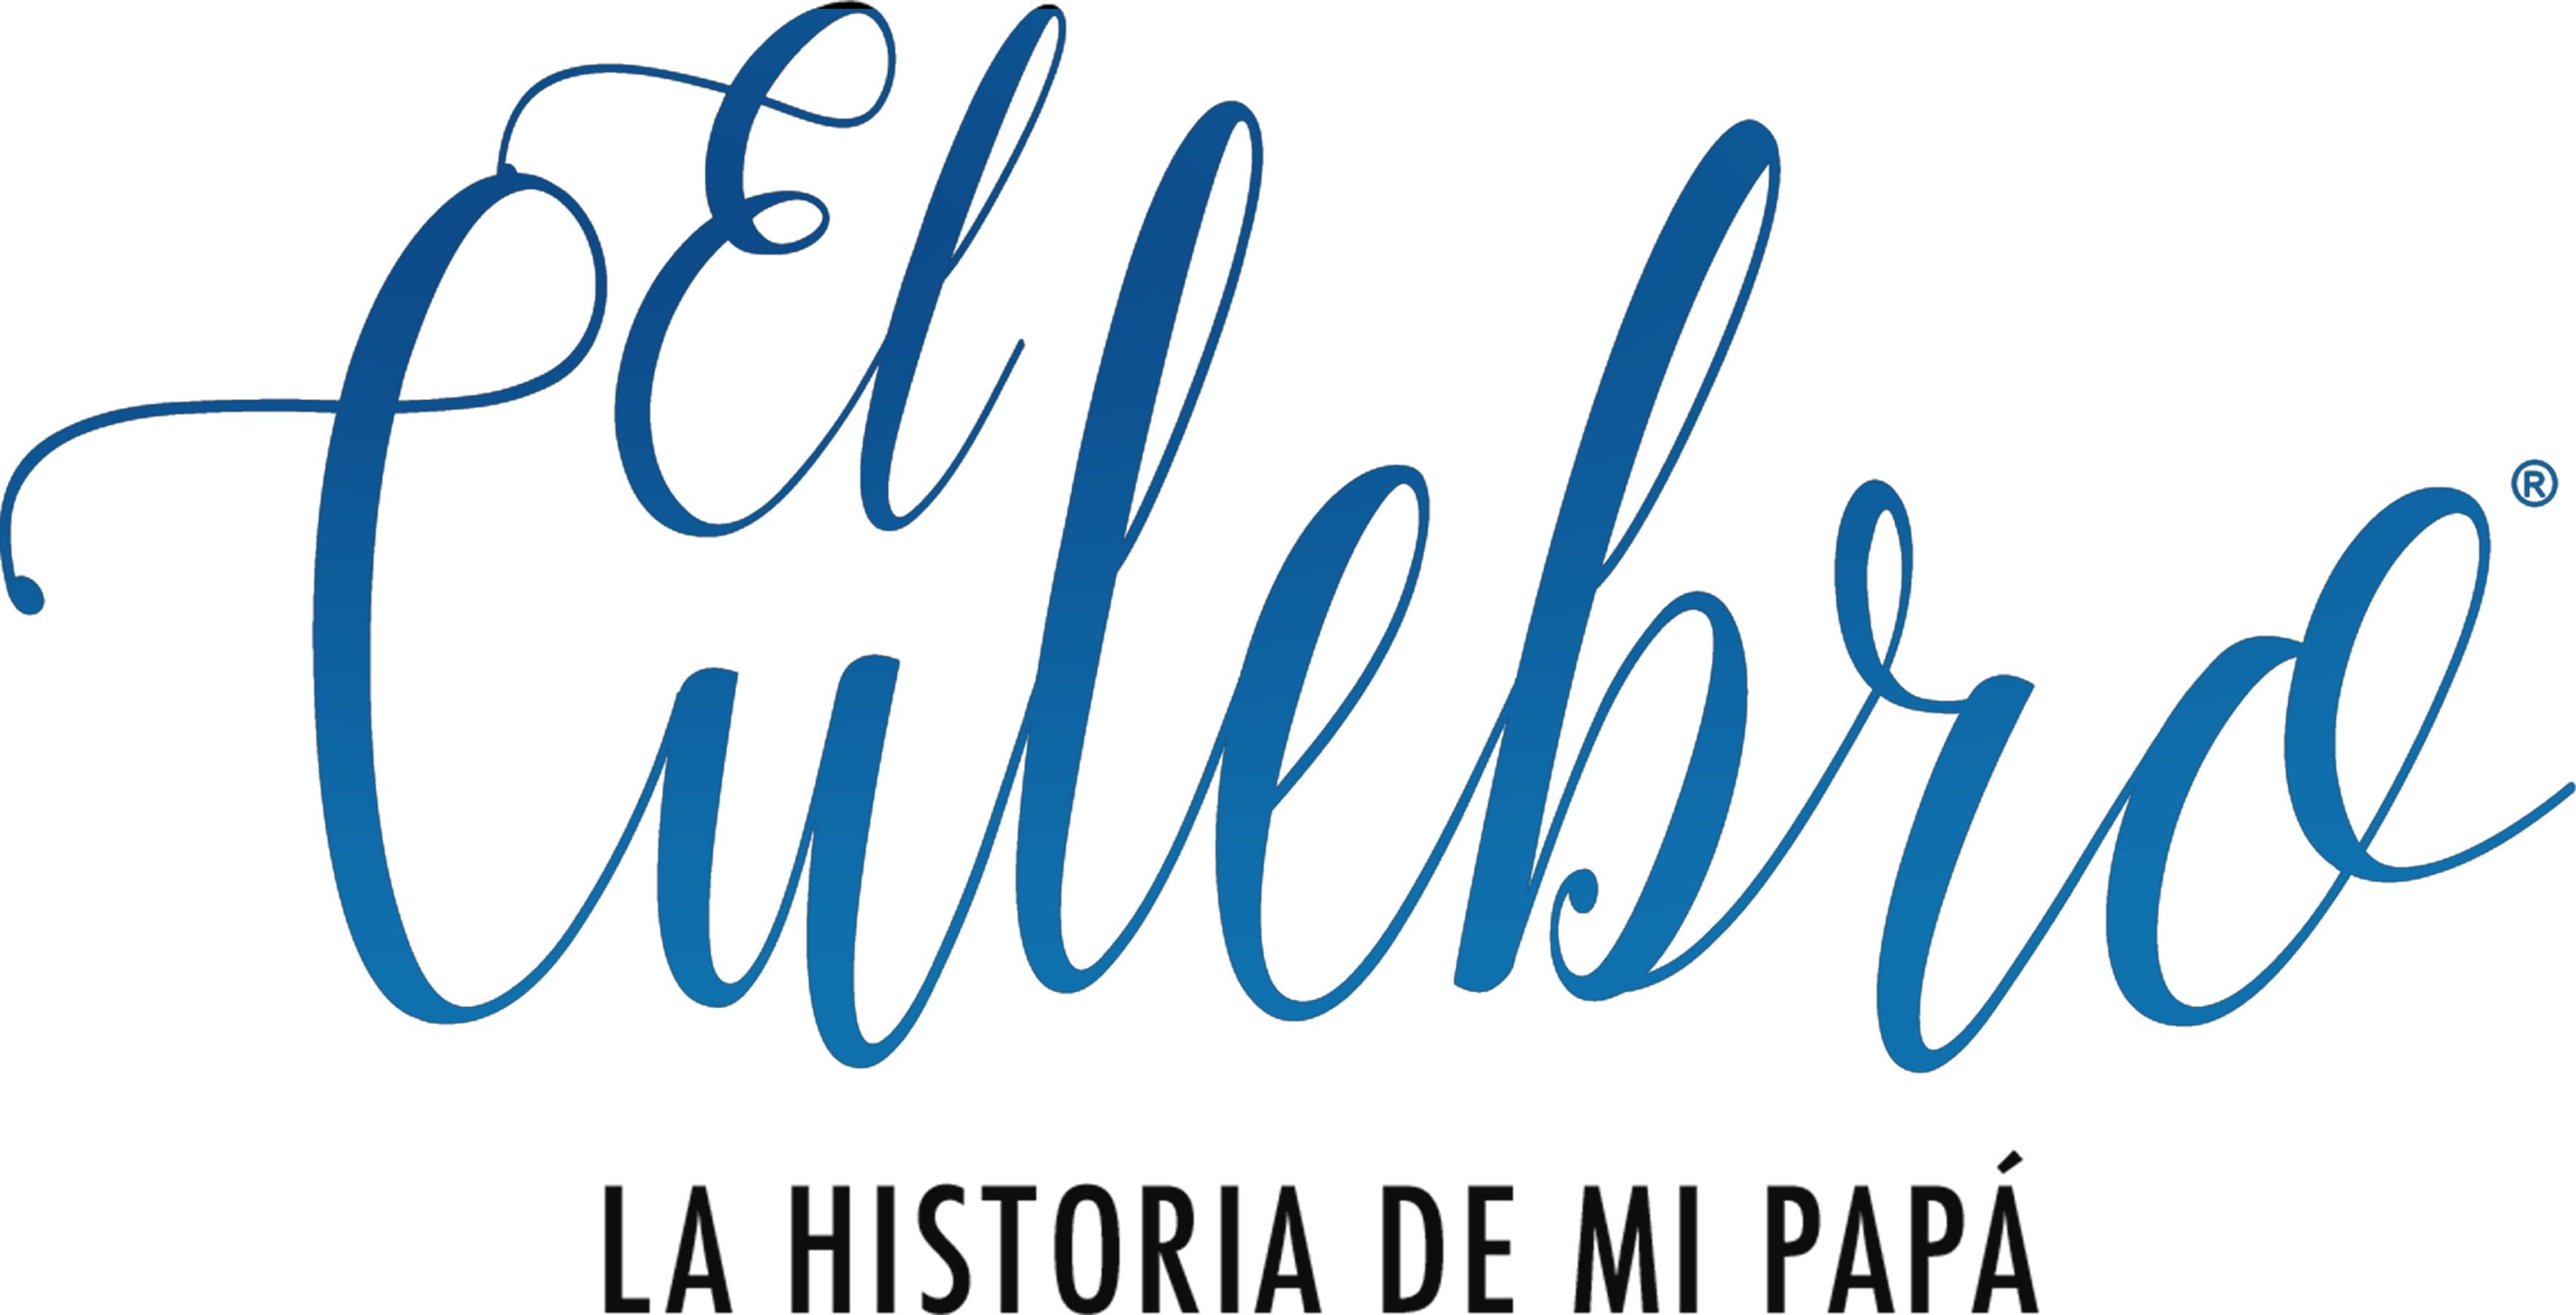 Movie title png. File culebro wikimedia commons